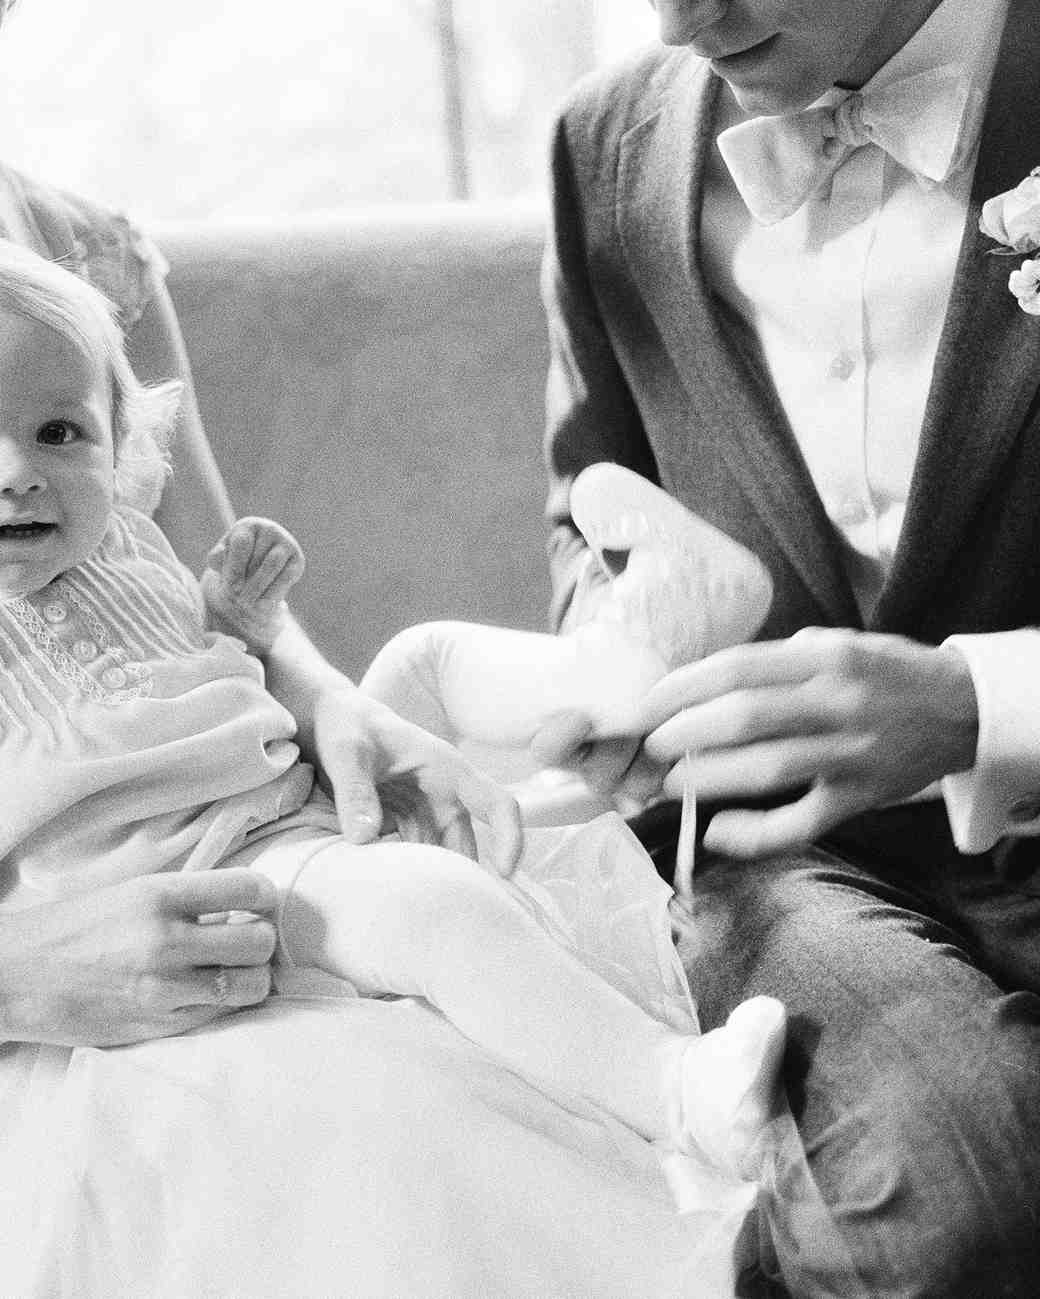 Father-Daughter Wedding Photos, Dad Dressing Baby Daughter